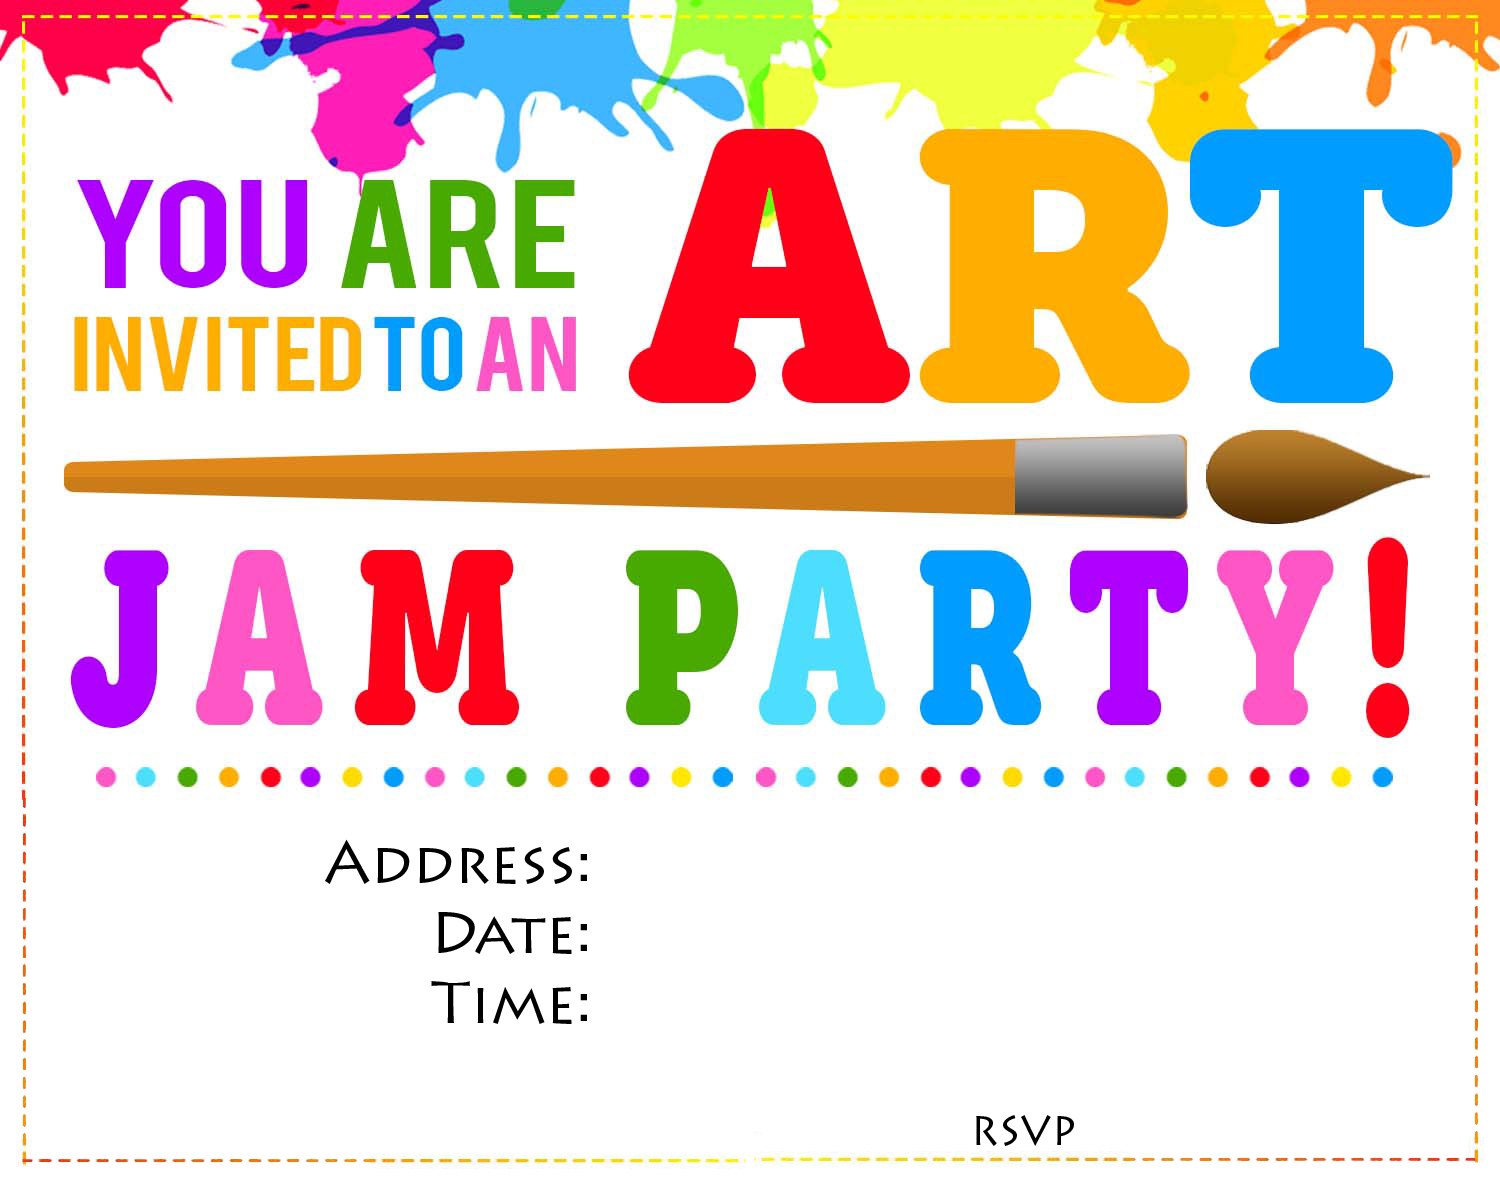 art theme art jam invite